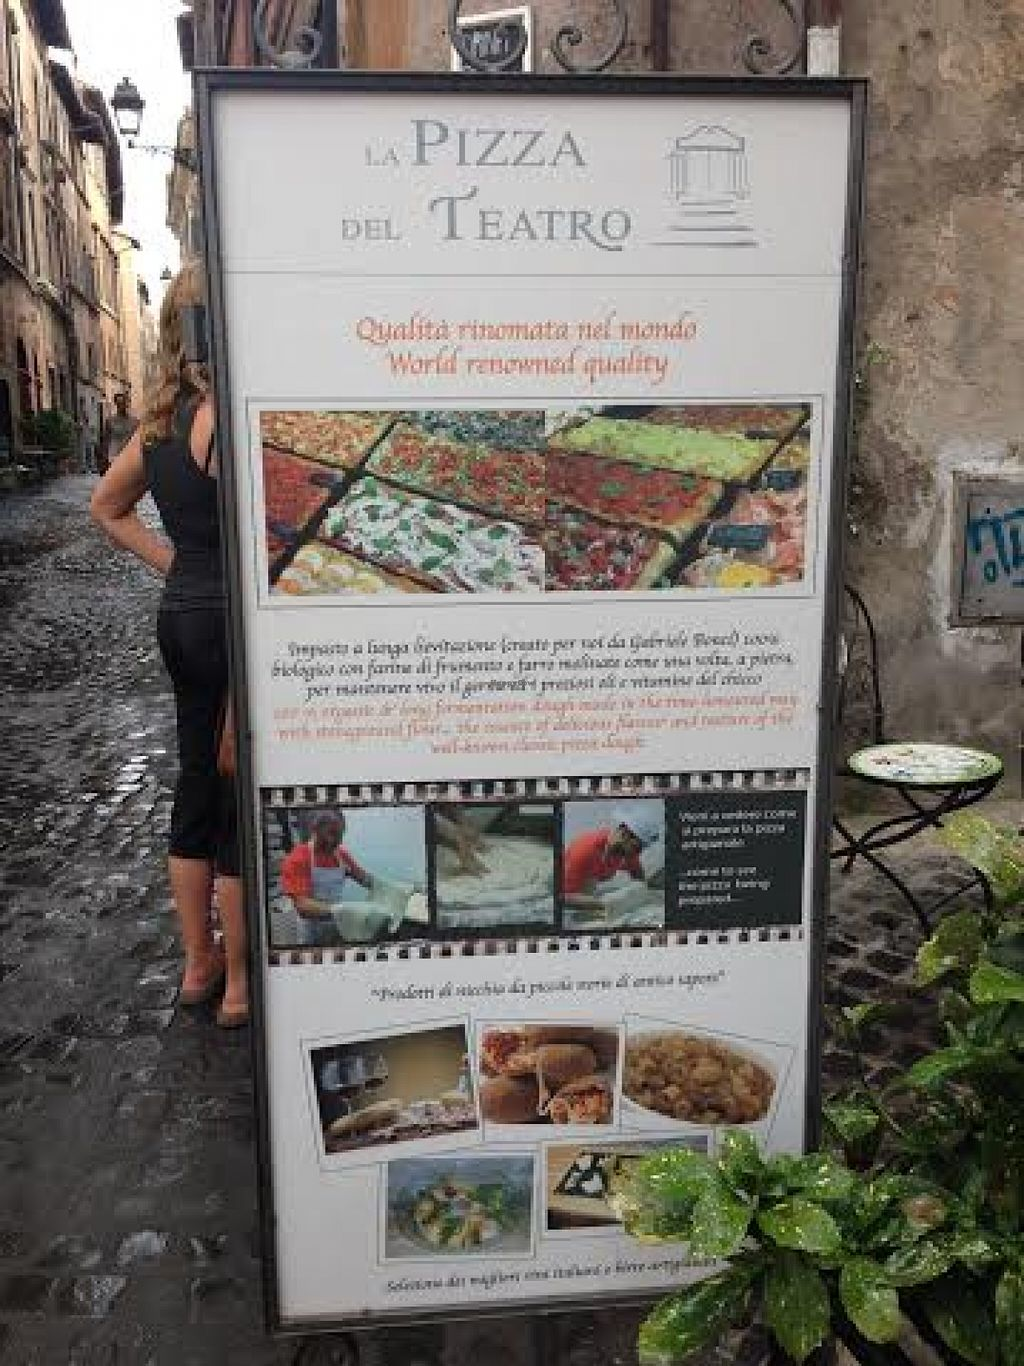 "Photo of La Pizza del Teatro  by <a href=""/members/profile/Lesley%20Anne%20Jeavons"">Lesley Anne Jeavons</a> <br/>la Pizza del Teatra sign <br/> August 14, 2015  - <a href='/contact/abuse/image/62008/113585'>Report</a>"